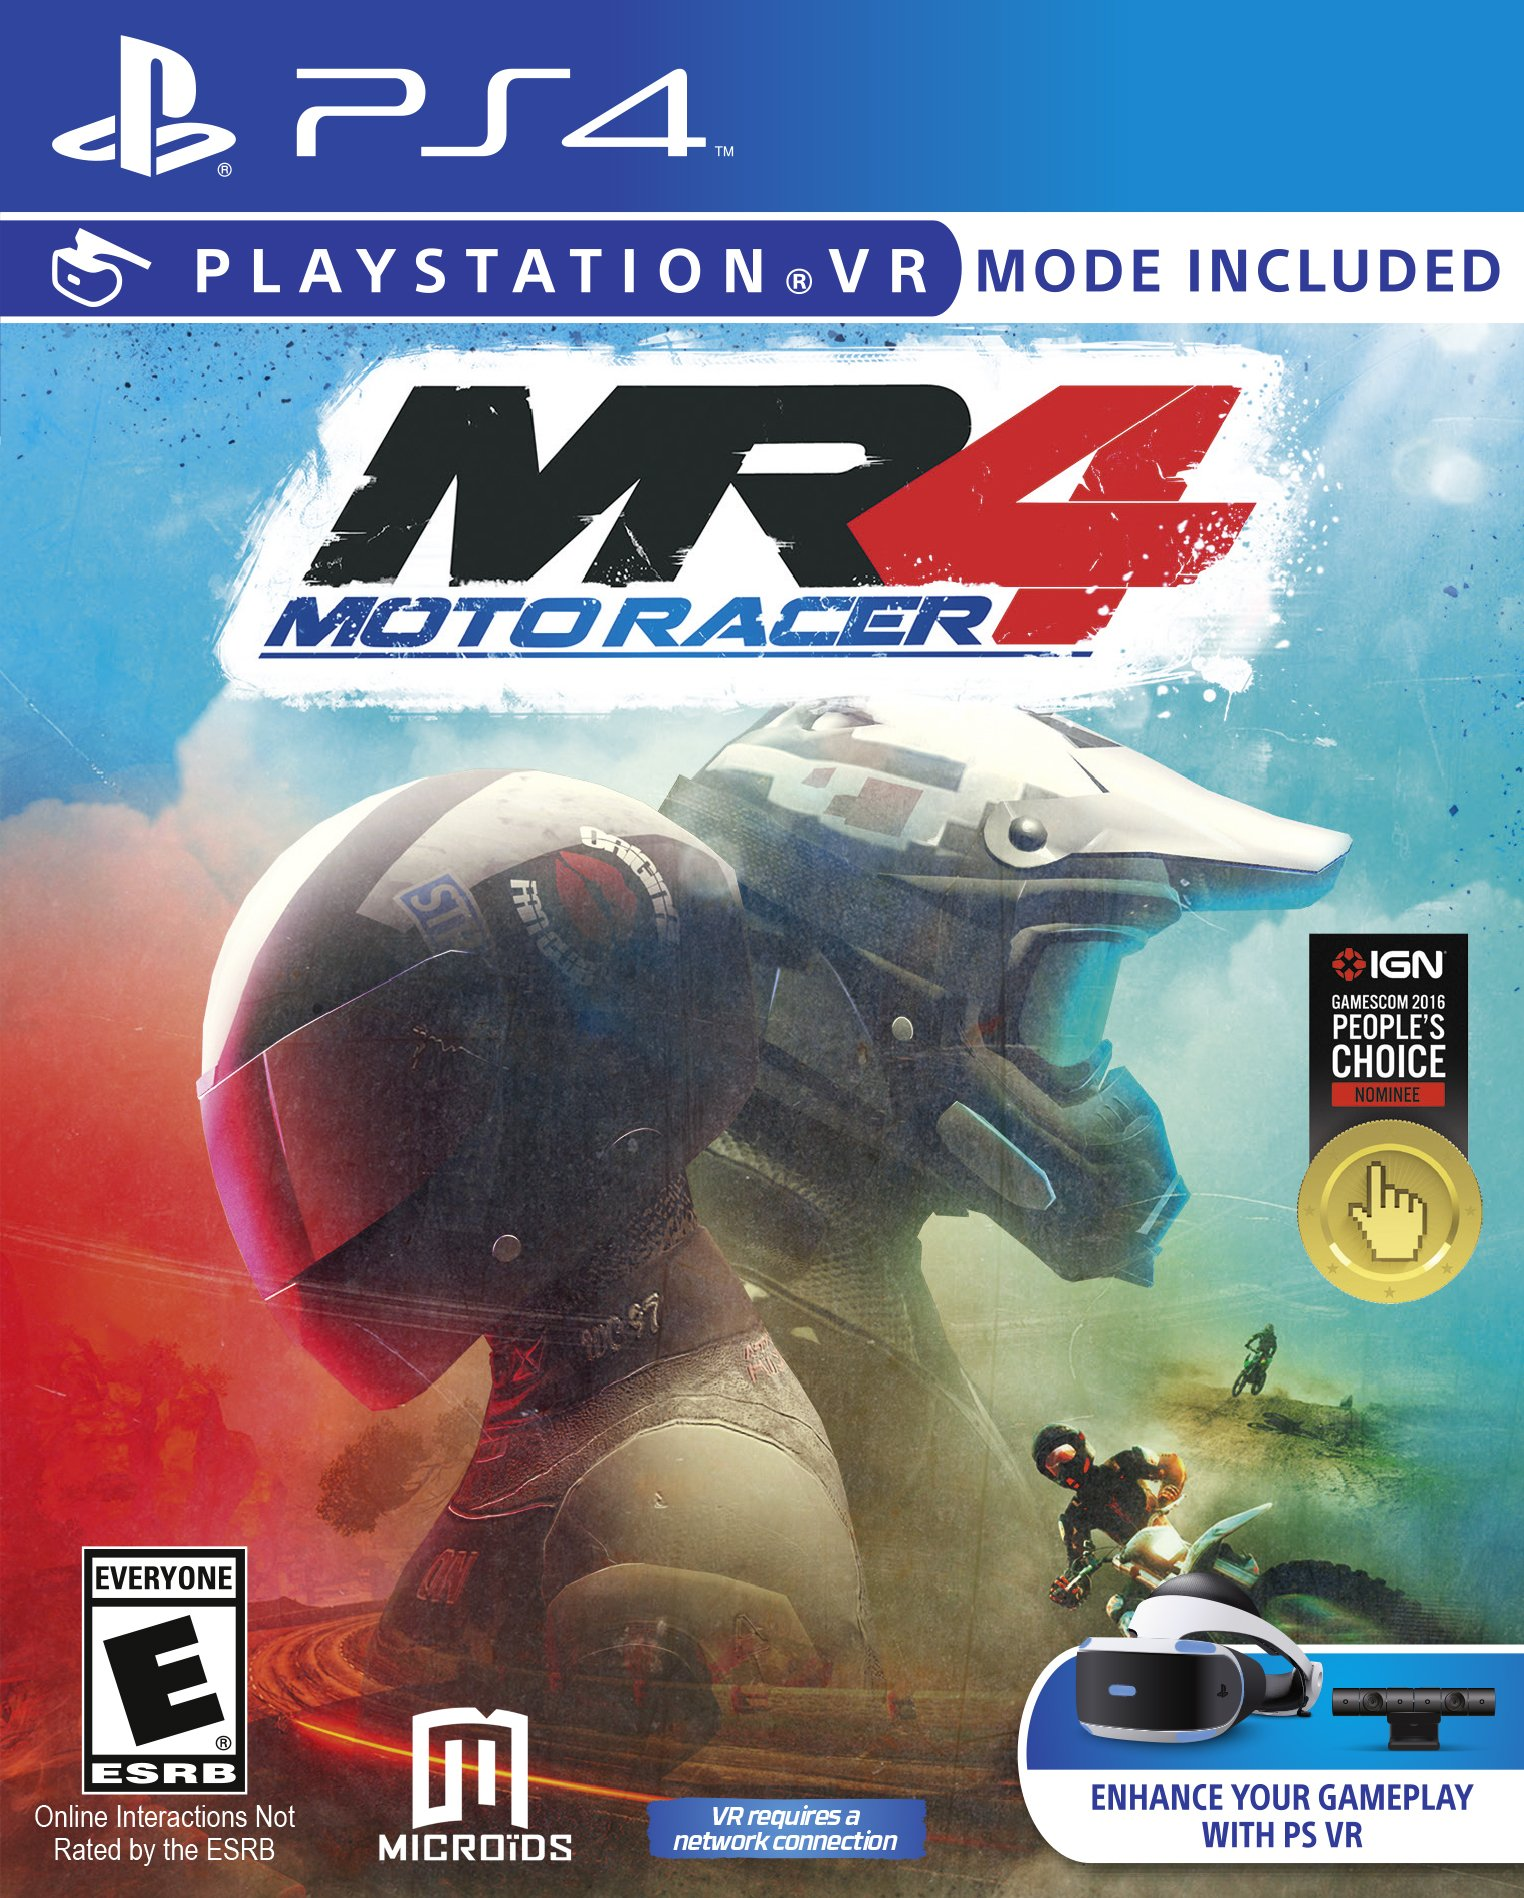 Moto Racer MR4 Playstation VR